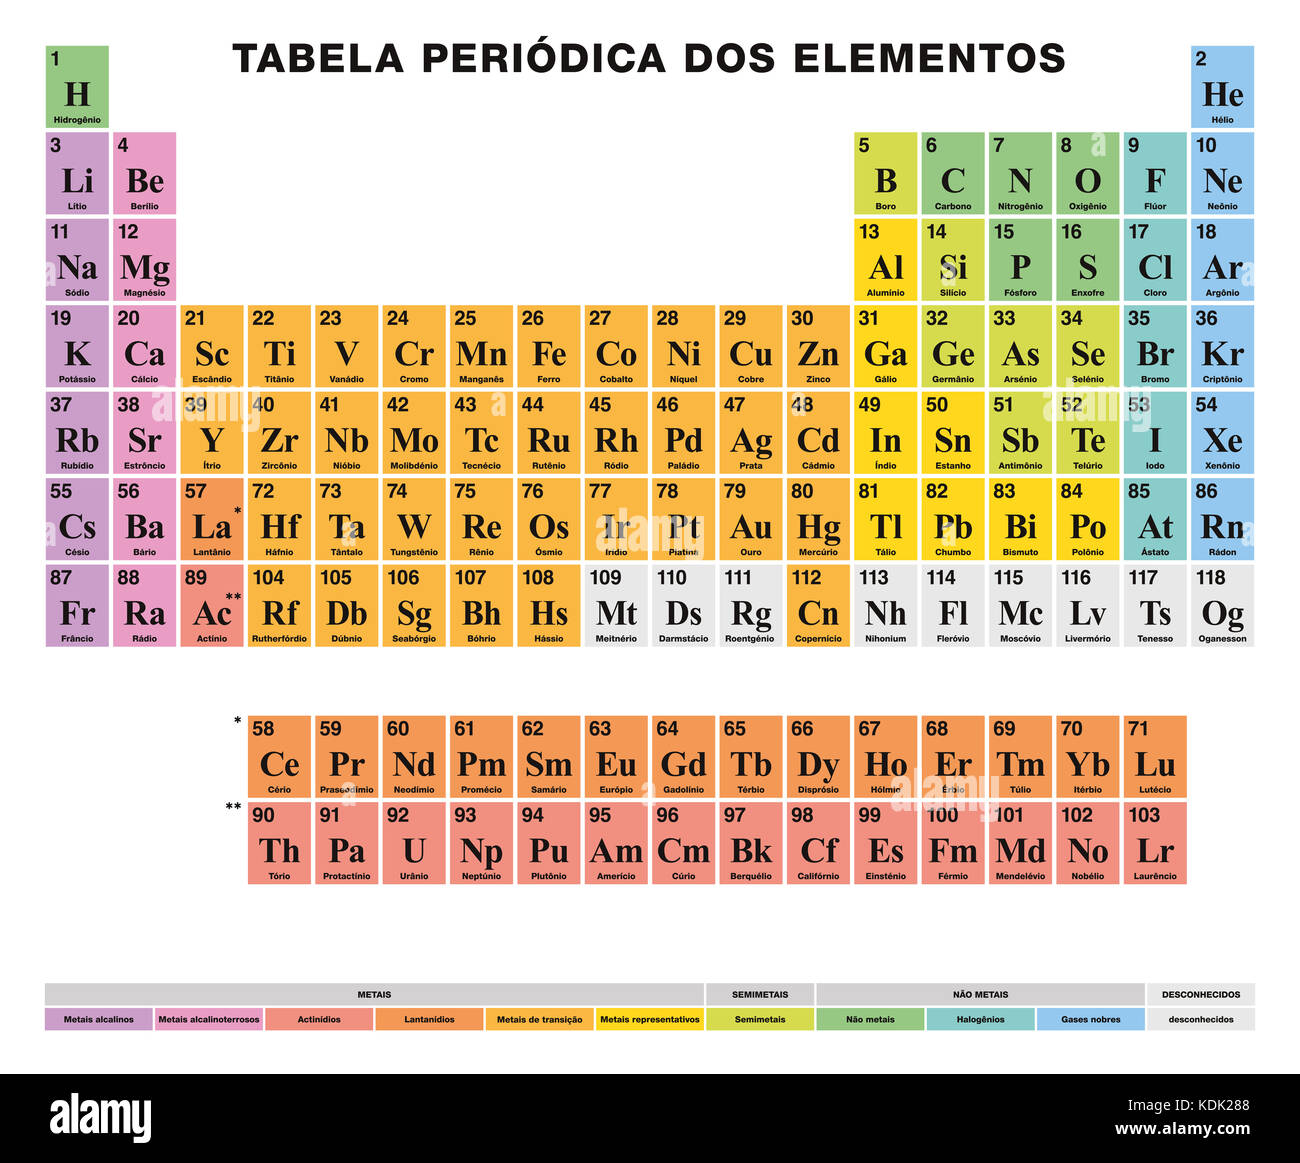 Lanthanide stock photos lanthanide stock images alamy periodic table of the elements portuguese labeling tabular arrangement 118 chemical elements gamestrikefo Gallery